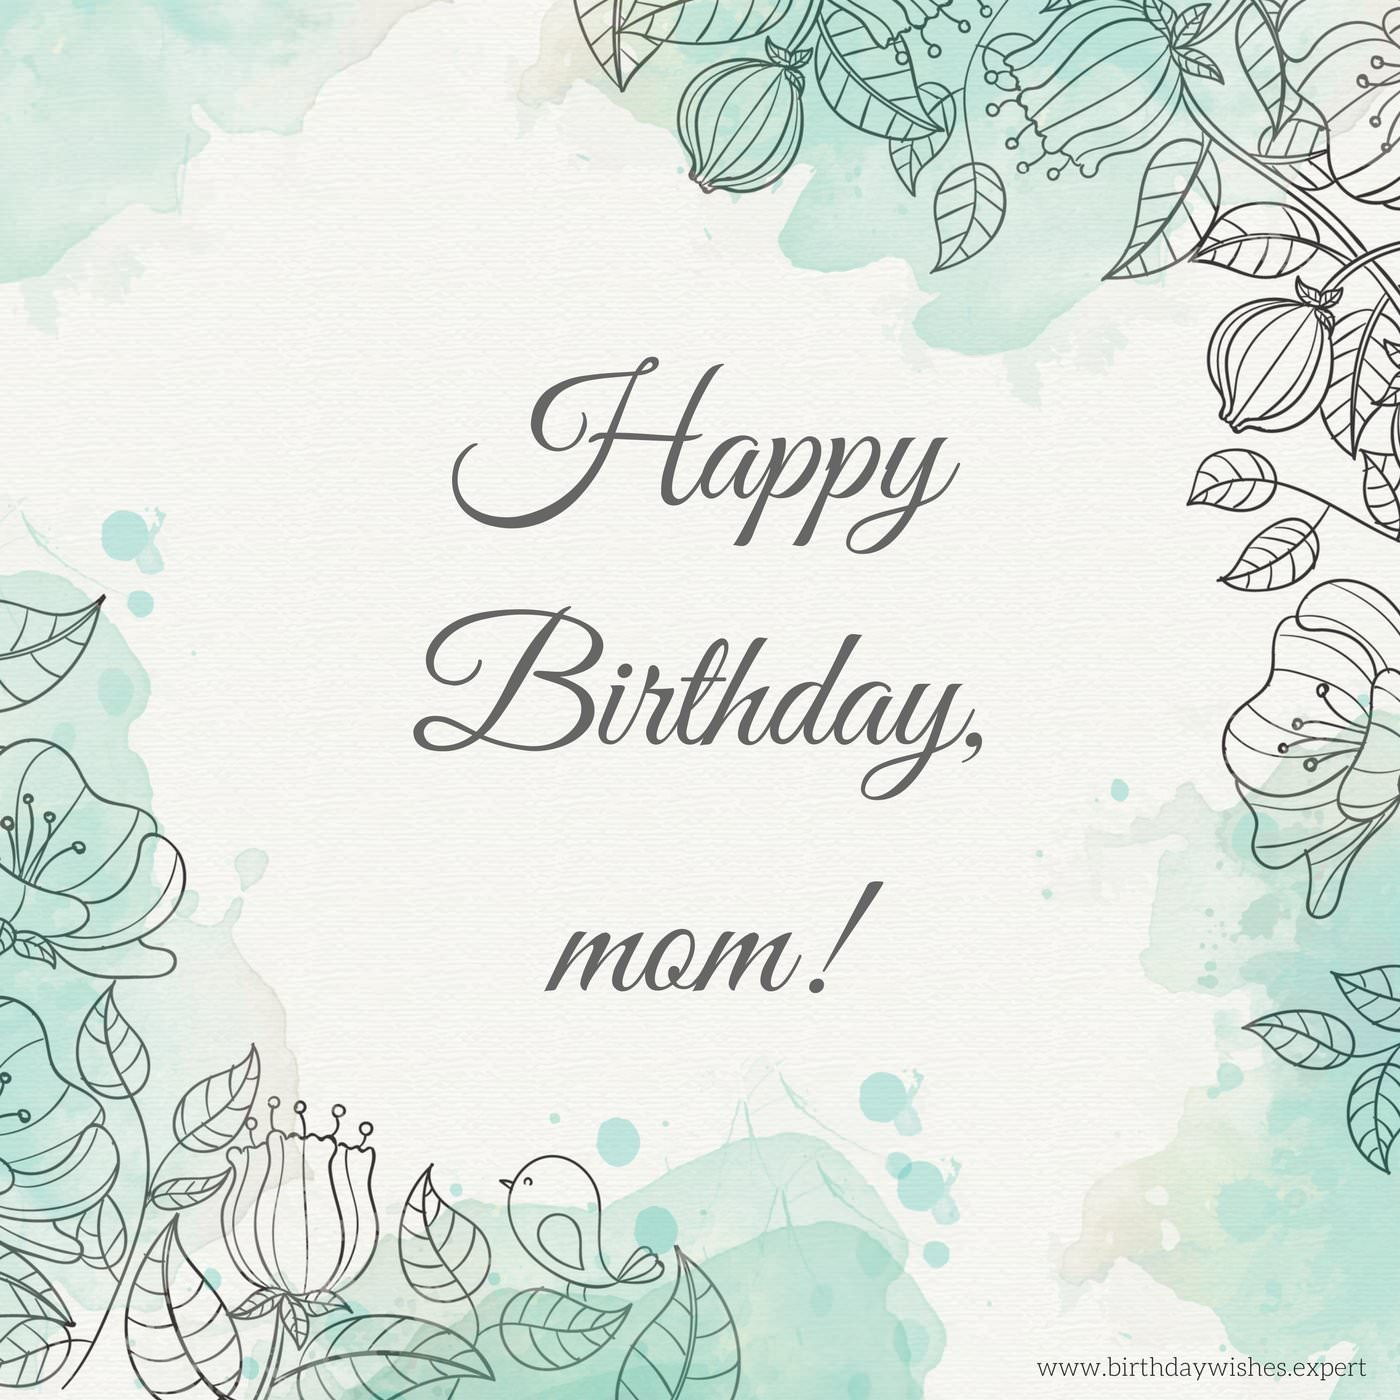 Beautiful birthday images that your mother would appreciate happy birthday mom dhlflorist Choice Image